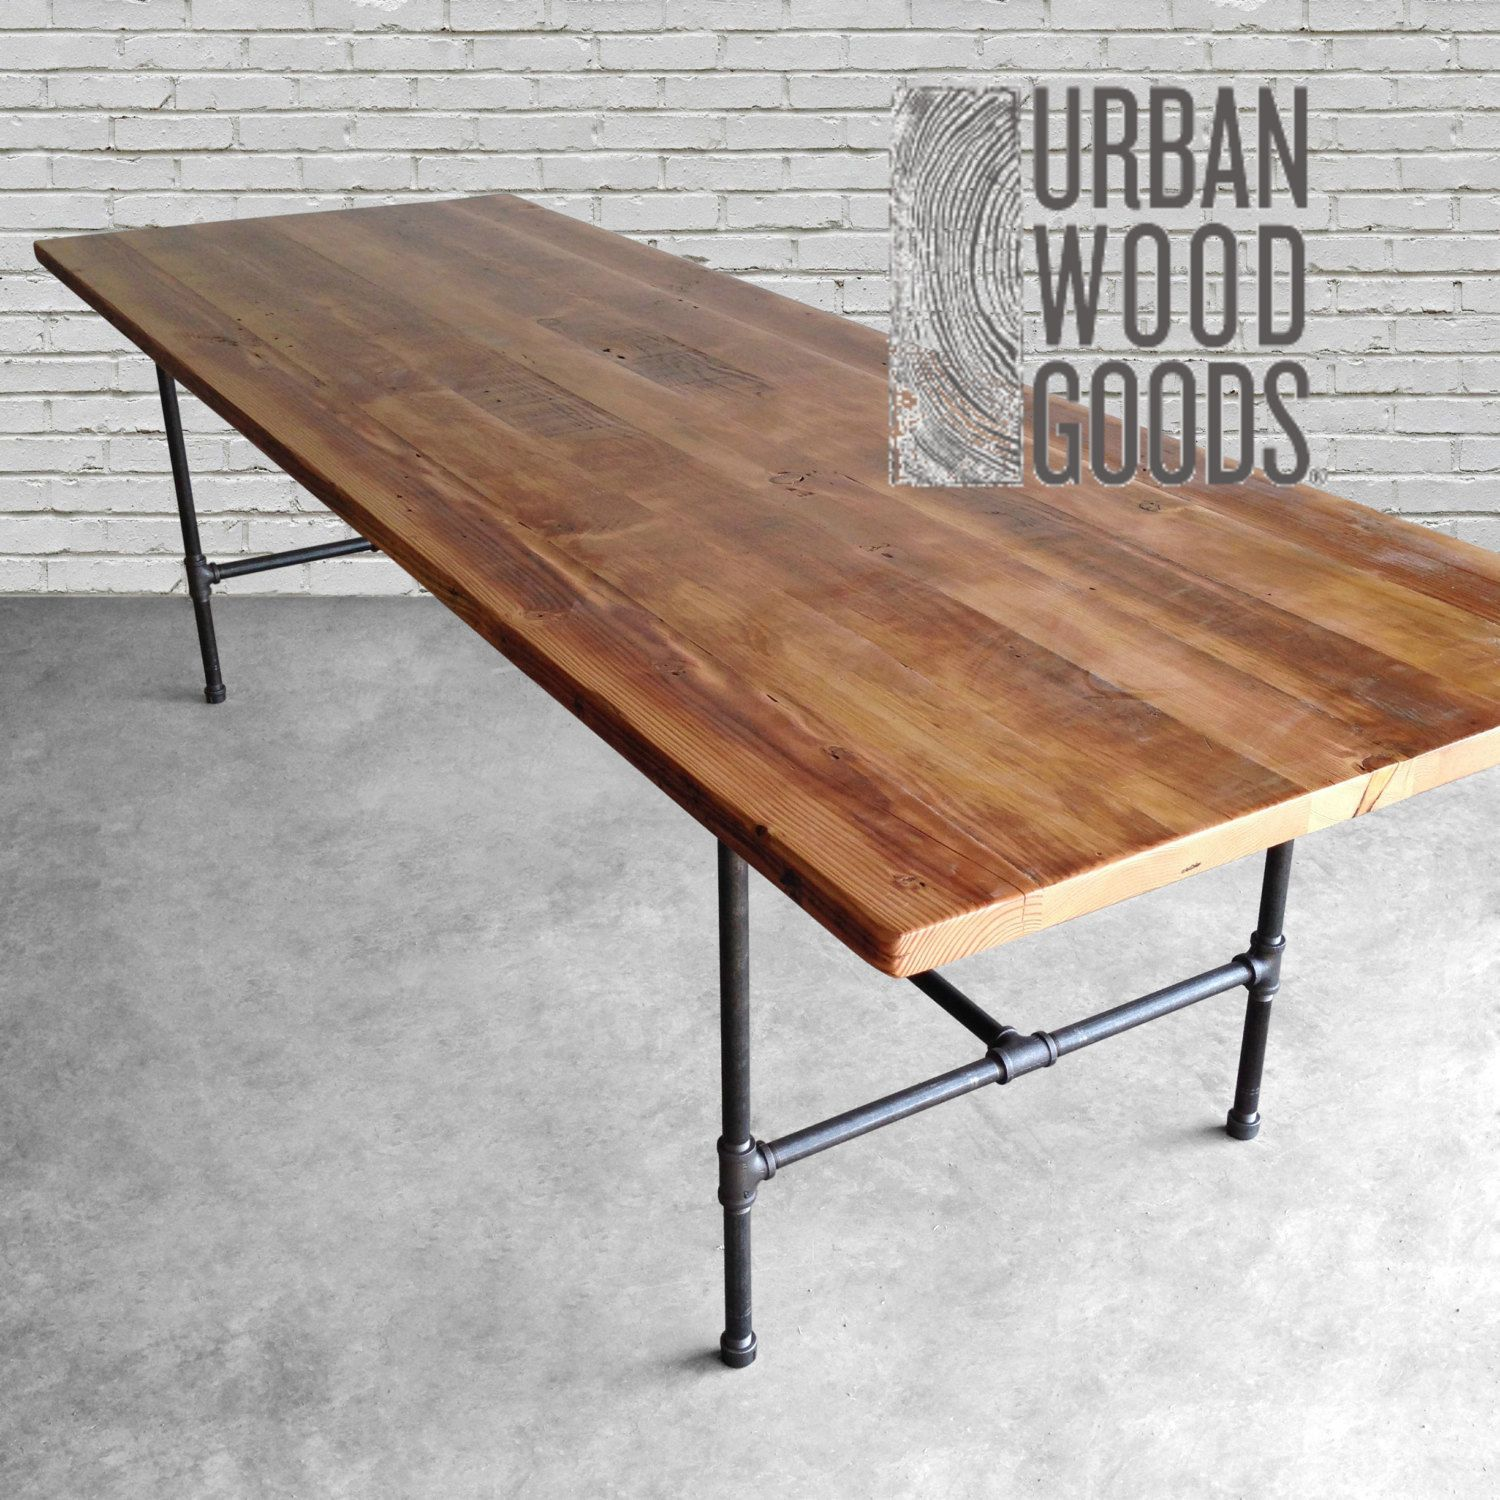 Wood dining table made with reclaimed wood top and iron pipe legs   Multi purpose. Wood dining table made with reclaimed wood top and iron pipe legs